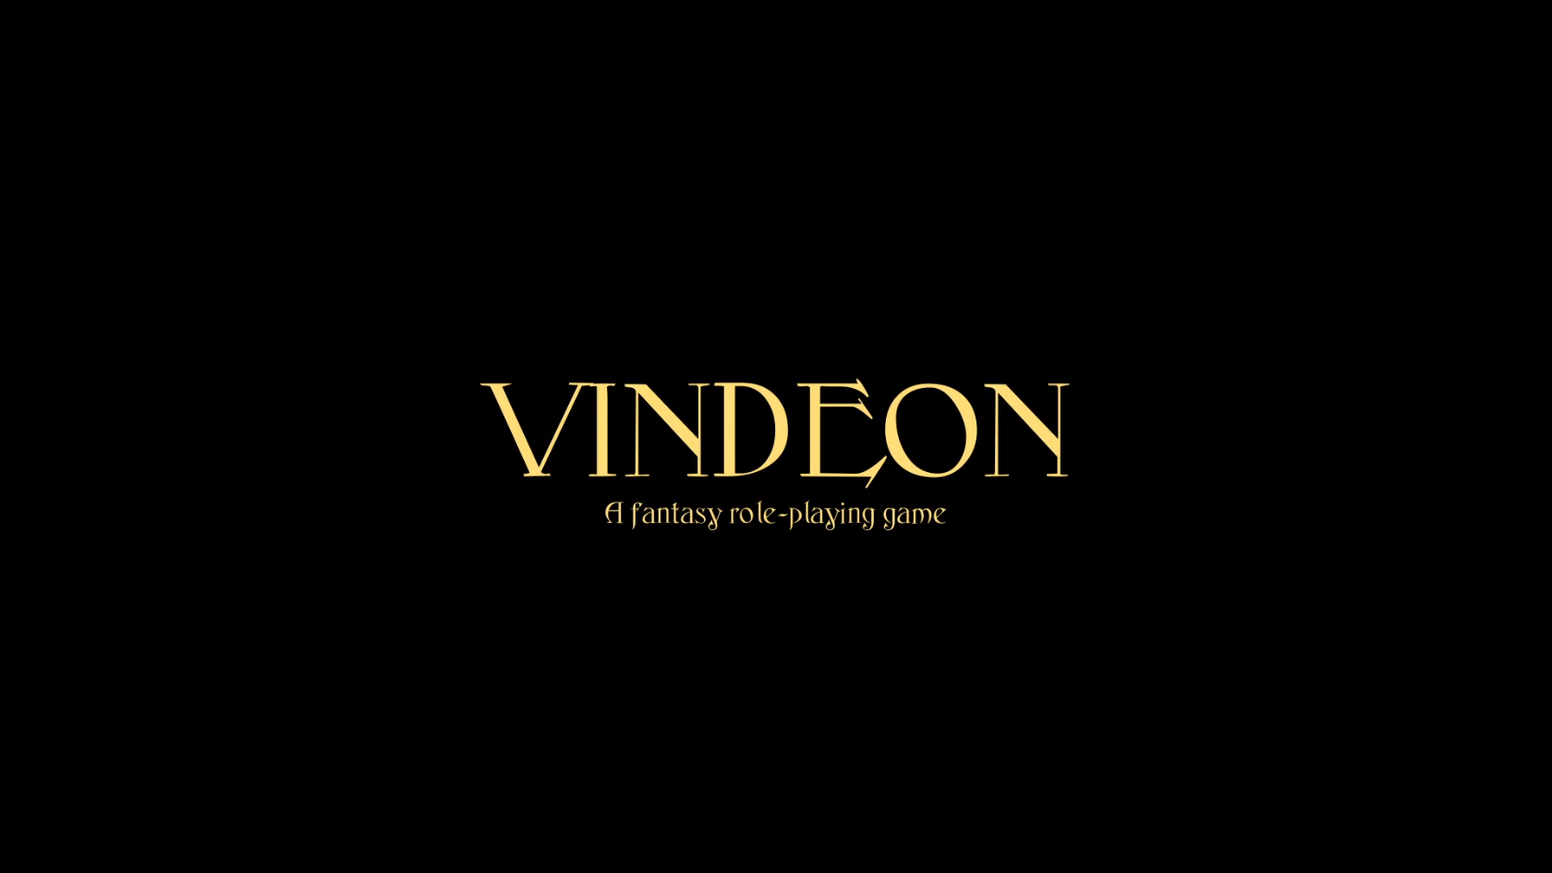 Play a character in the world of Vindeon - a tabletop RPG of fast dynamic gameplay and immersive roleplaying.